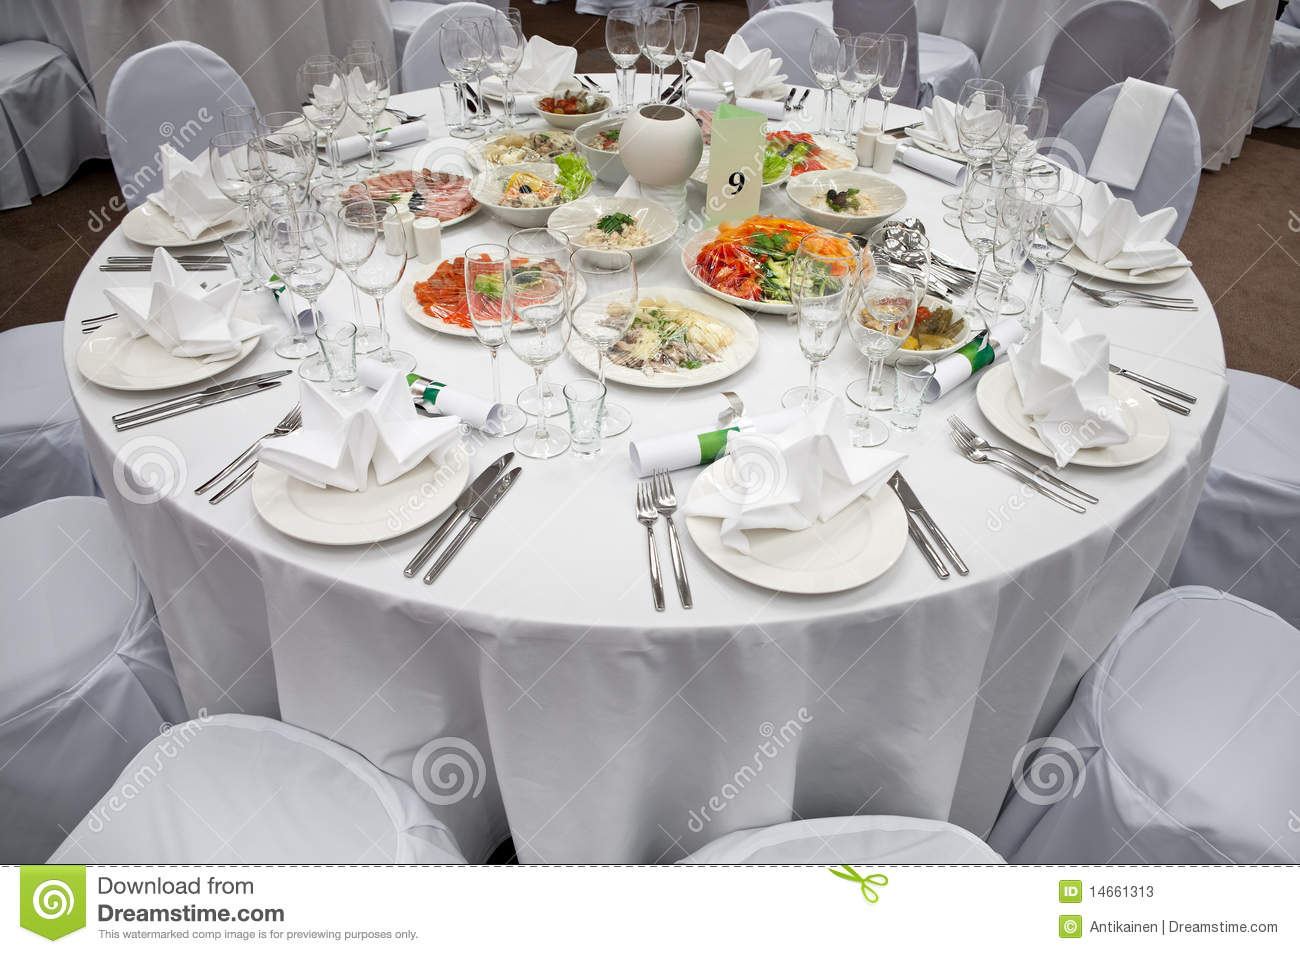 Products in addition 5010 08 as well Stock Photos Plate Various Wrap Sandwiches Filled Chicken Cheese Image33602343 furthermore Silver Gray Grey Spandex Stretchy Banquet Chair Cover Houston Rental further Savoy Bistro Menu. on banquet plates